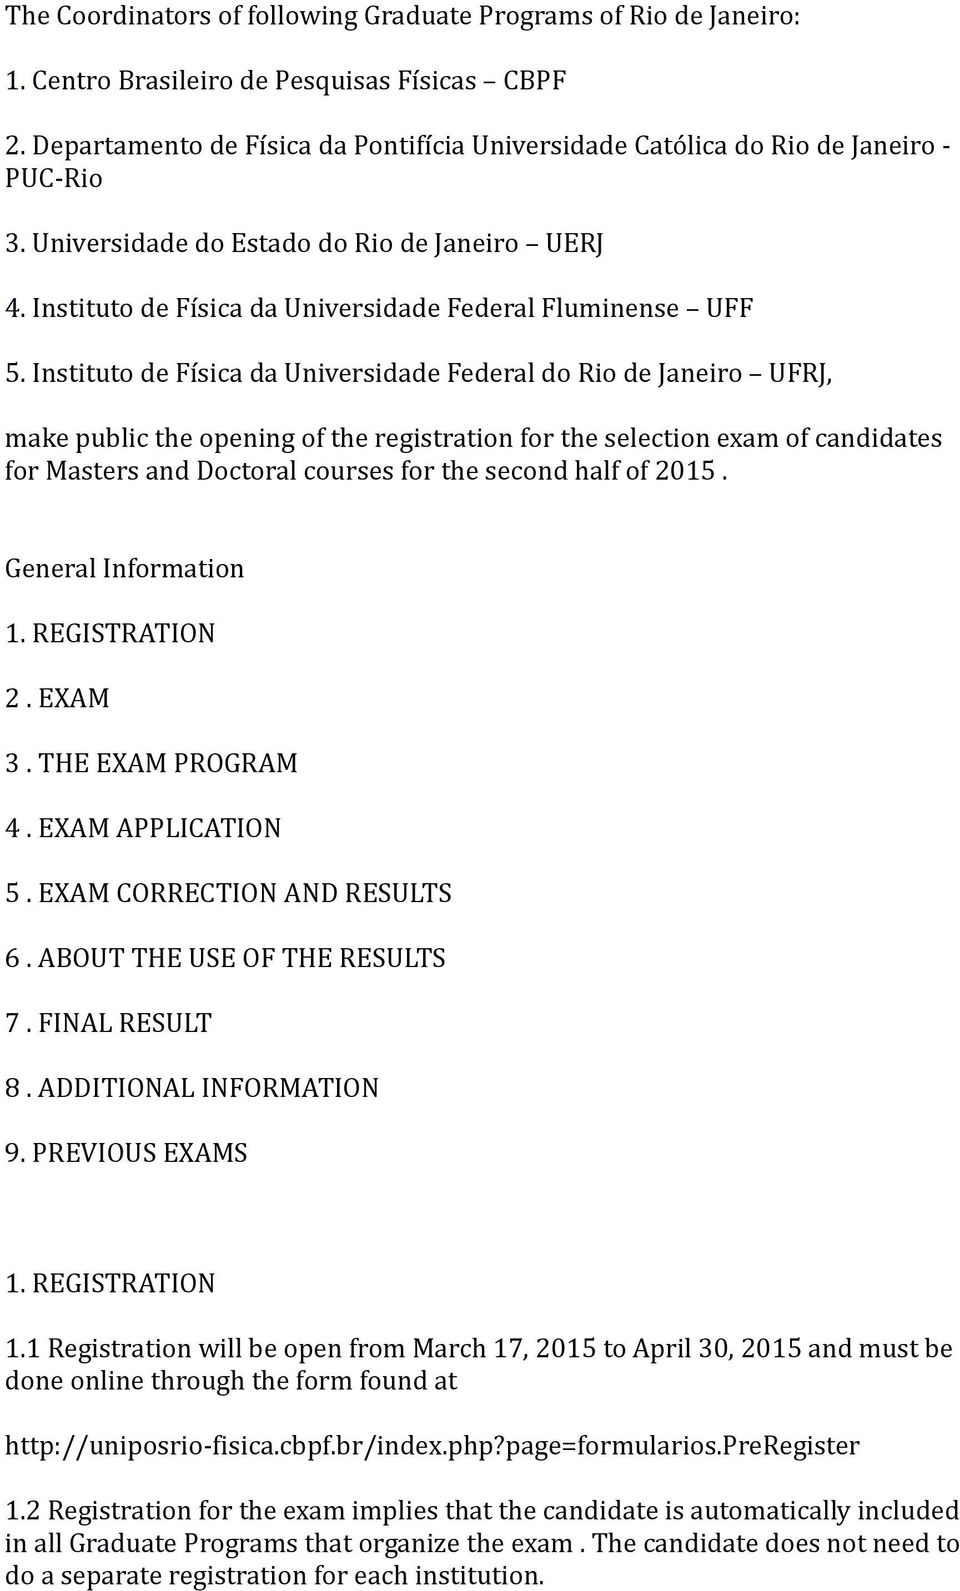 Instituto de Física da Universidade Federal do Rio de Janeiro UFRJ, make public the opening of the registration for the selection exam of candidates for Masters and Doctoral courses for the second